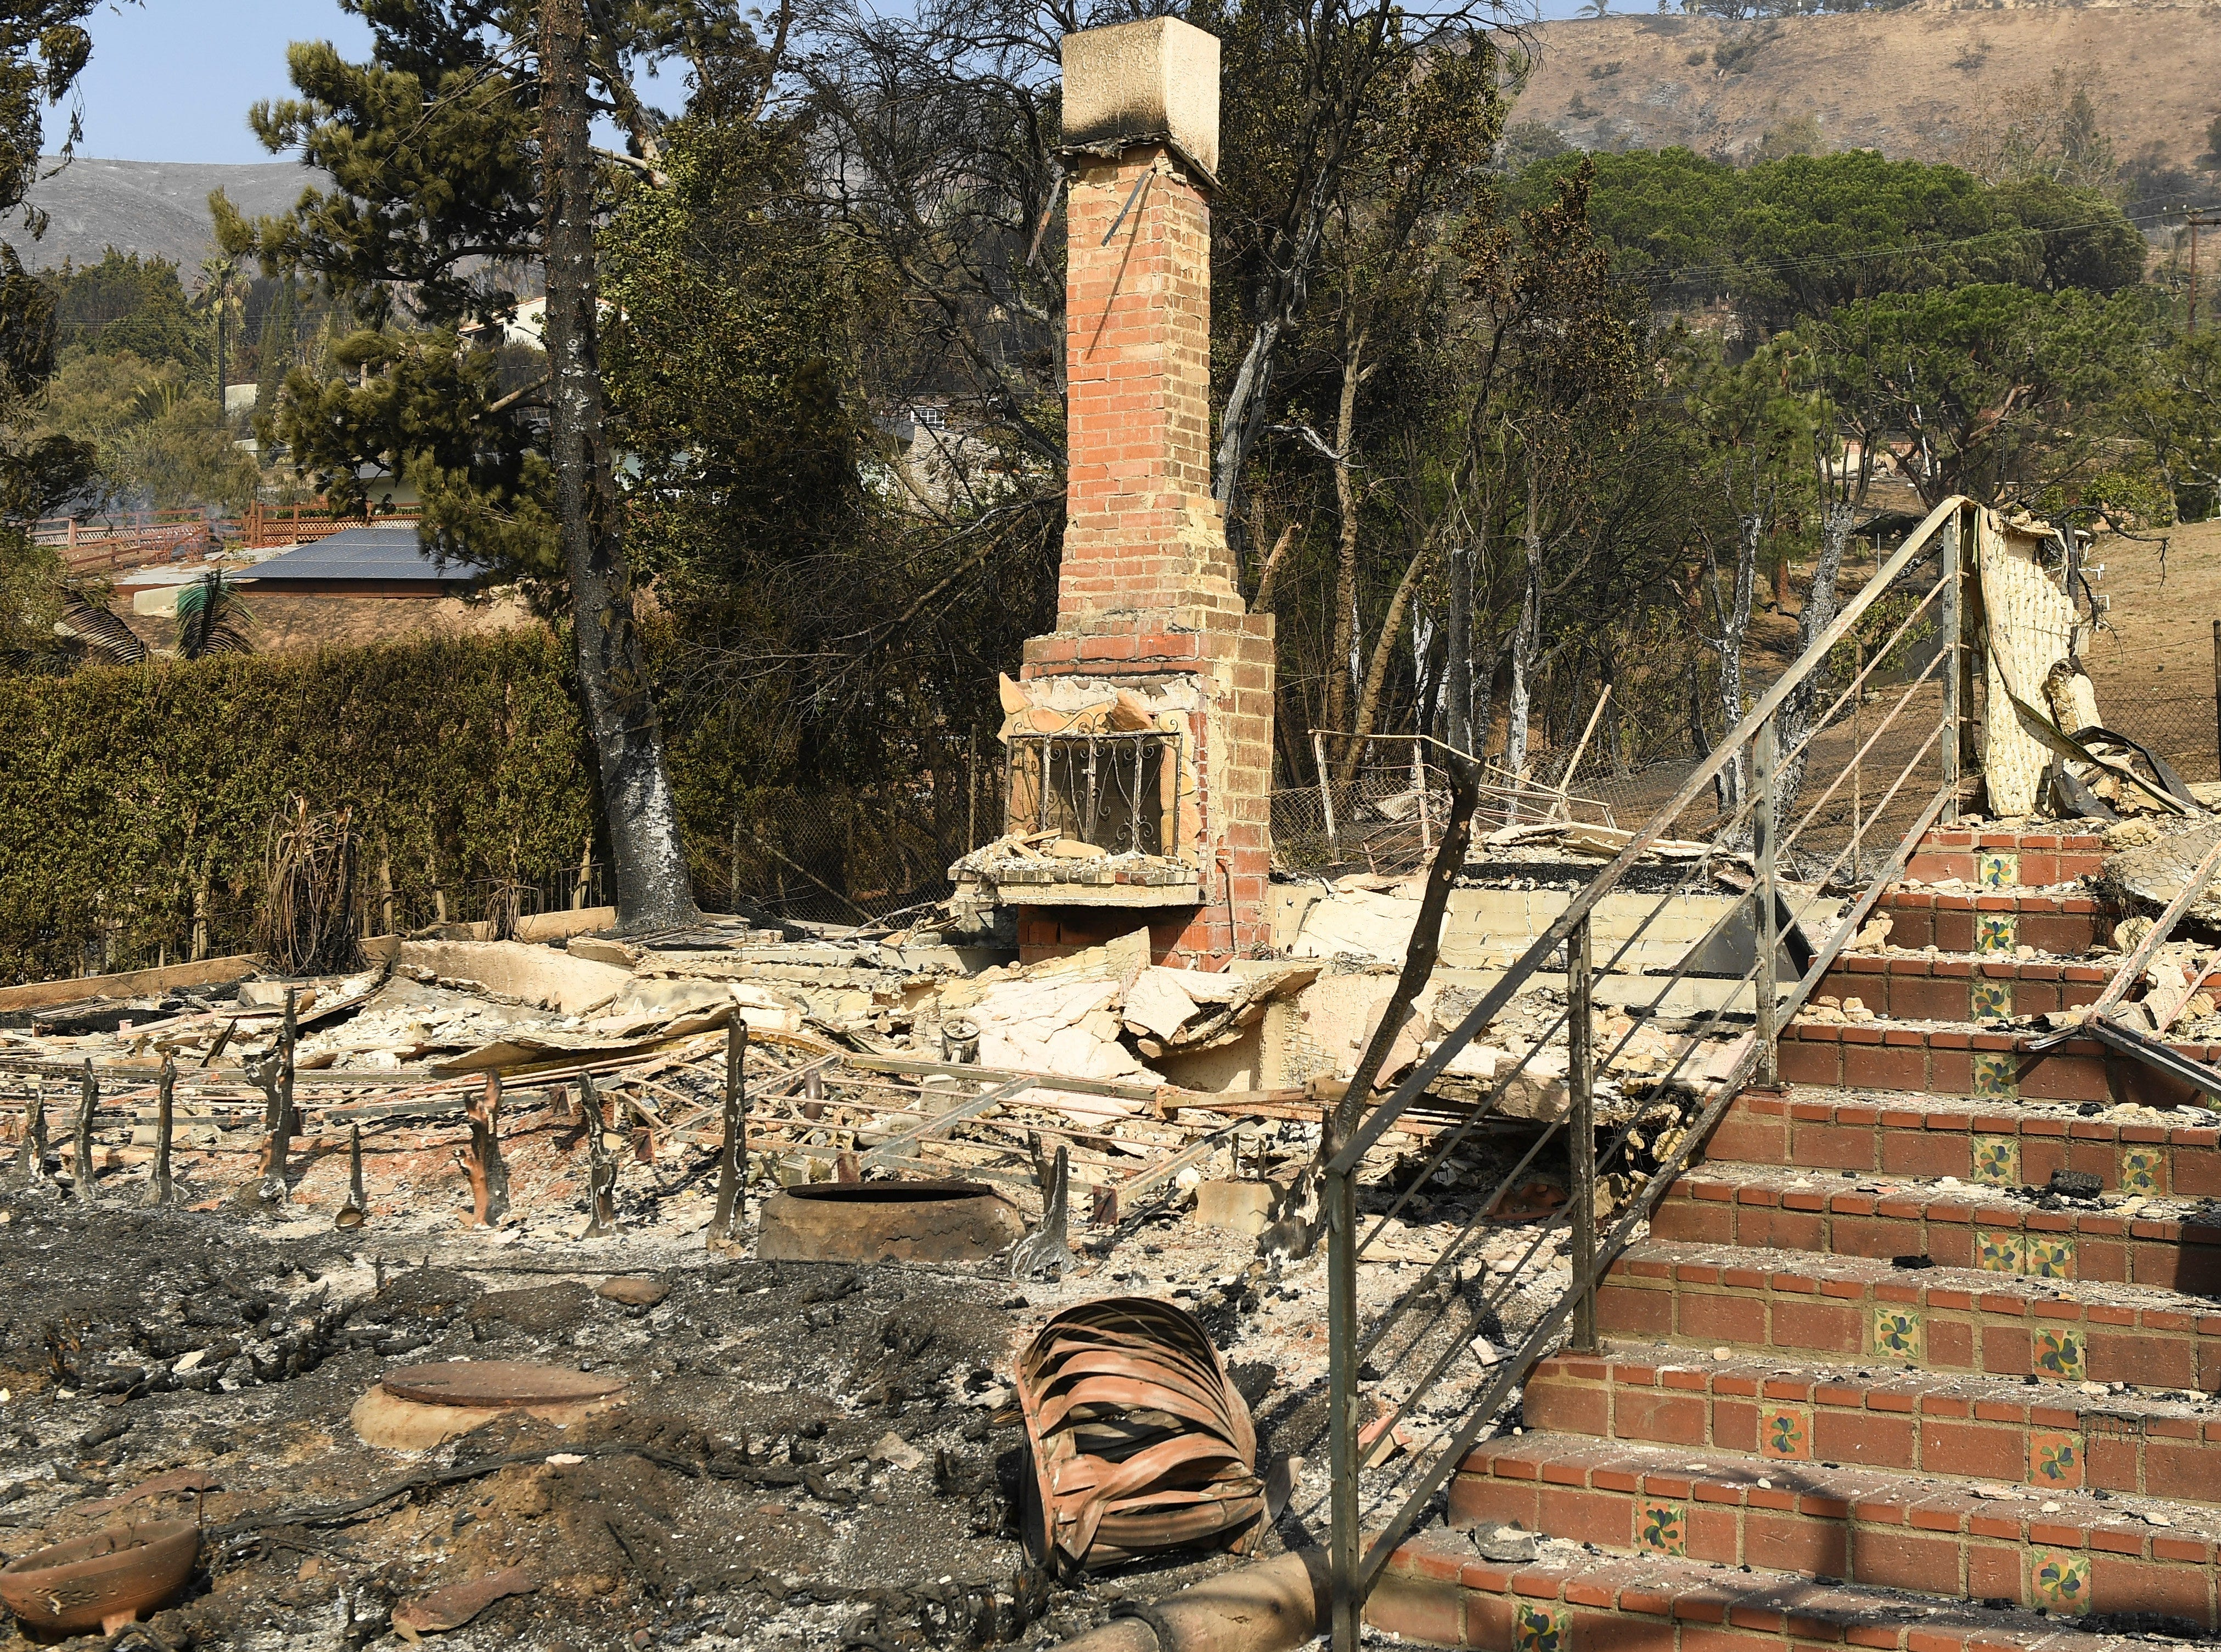 The remains of a home on Harvester Road in Malibu. The resident of the home found a piece of family jewelry digging through the ruins of him home. The neighborhood was over run by the Woosley Fire which has consumed over 70,000 acres as of 11/10/2018.